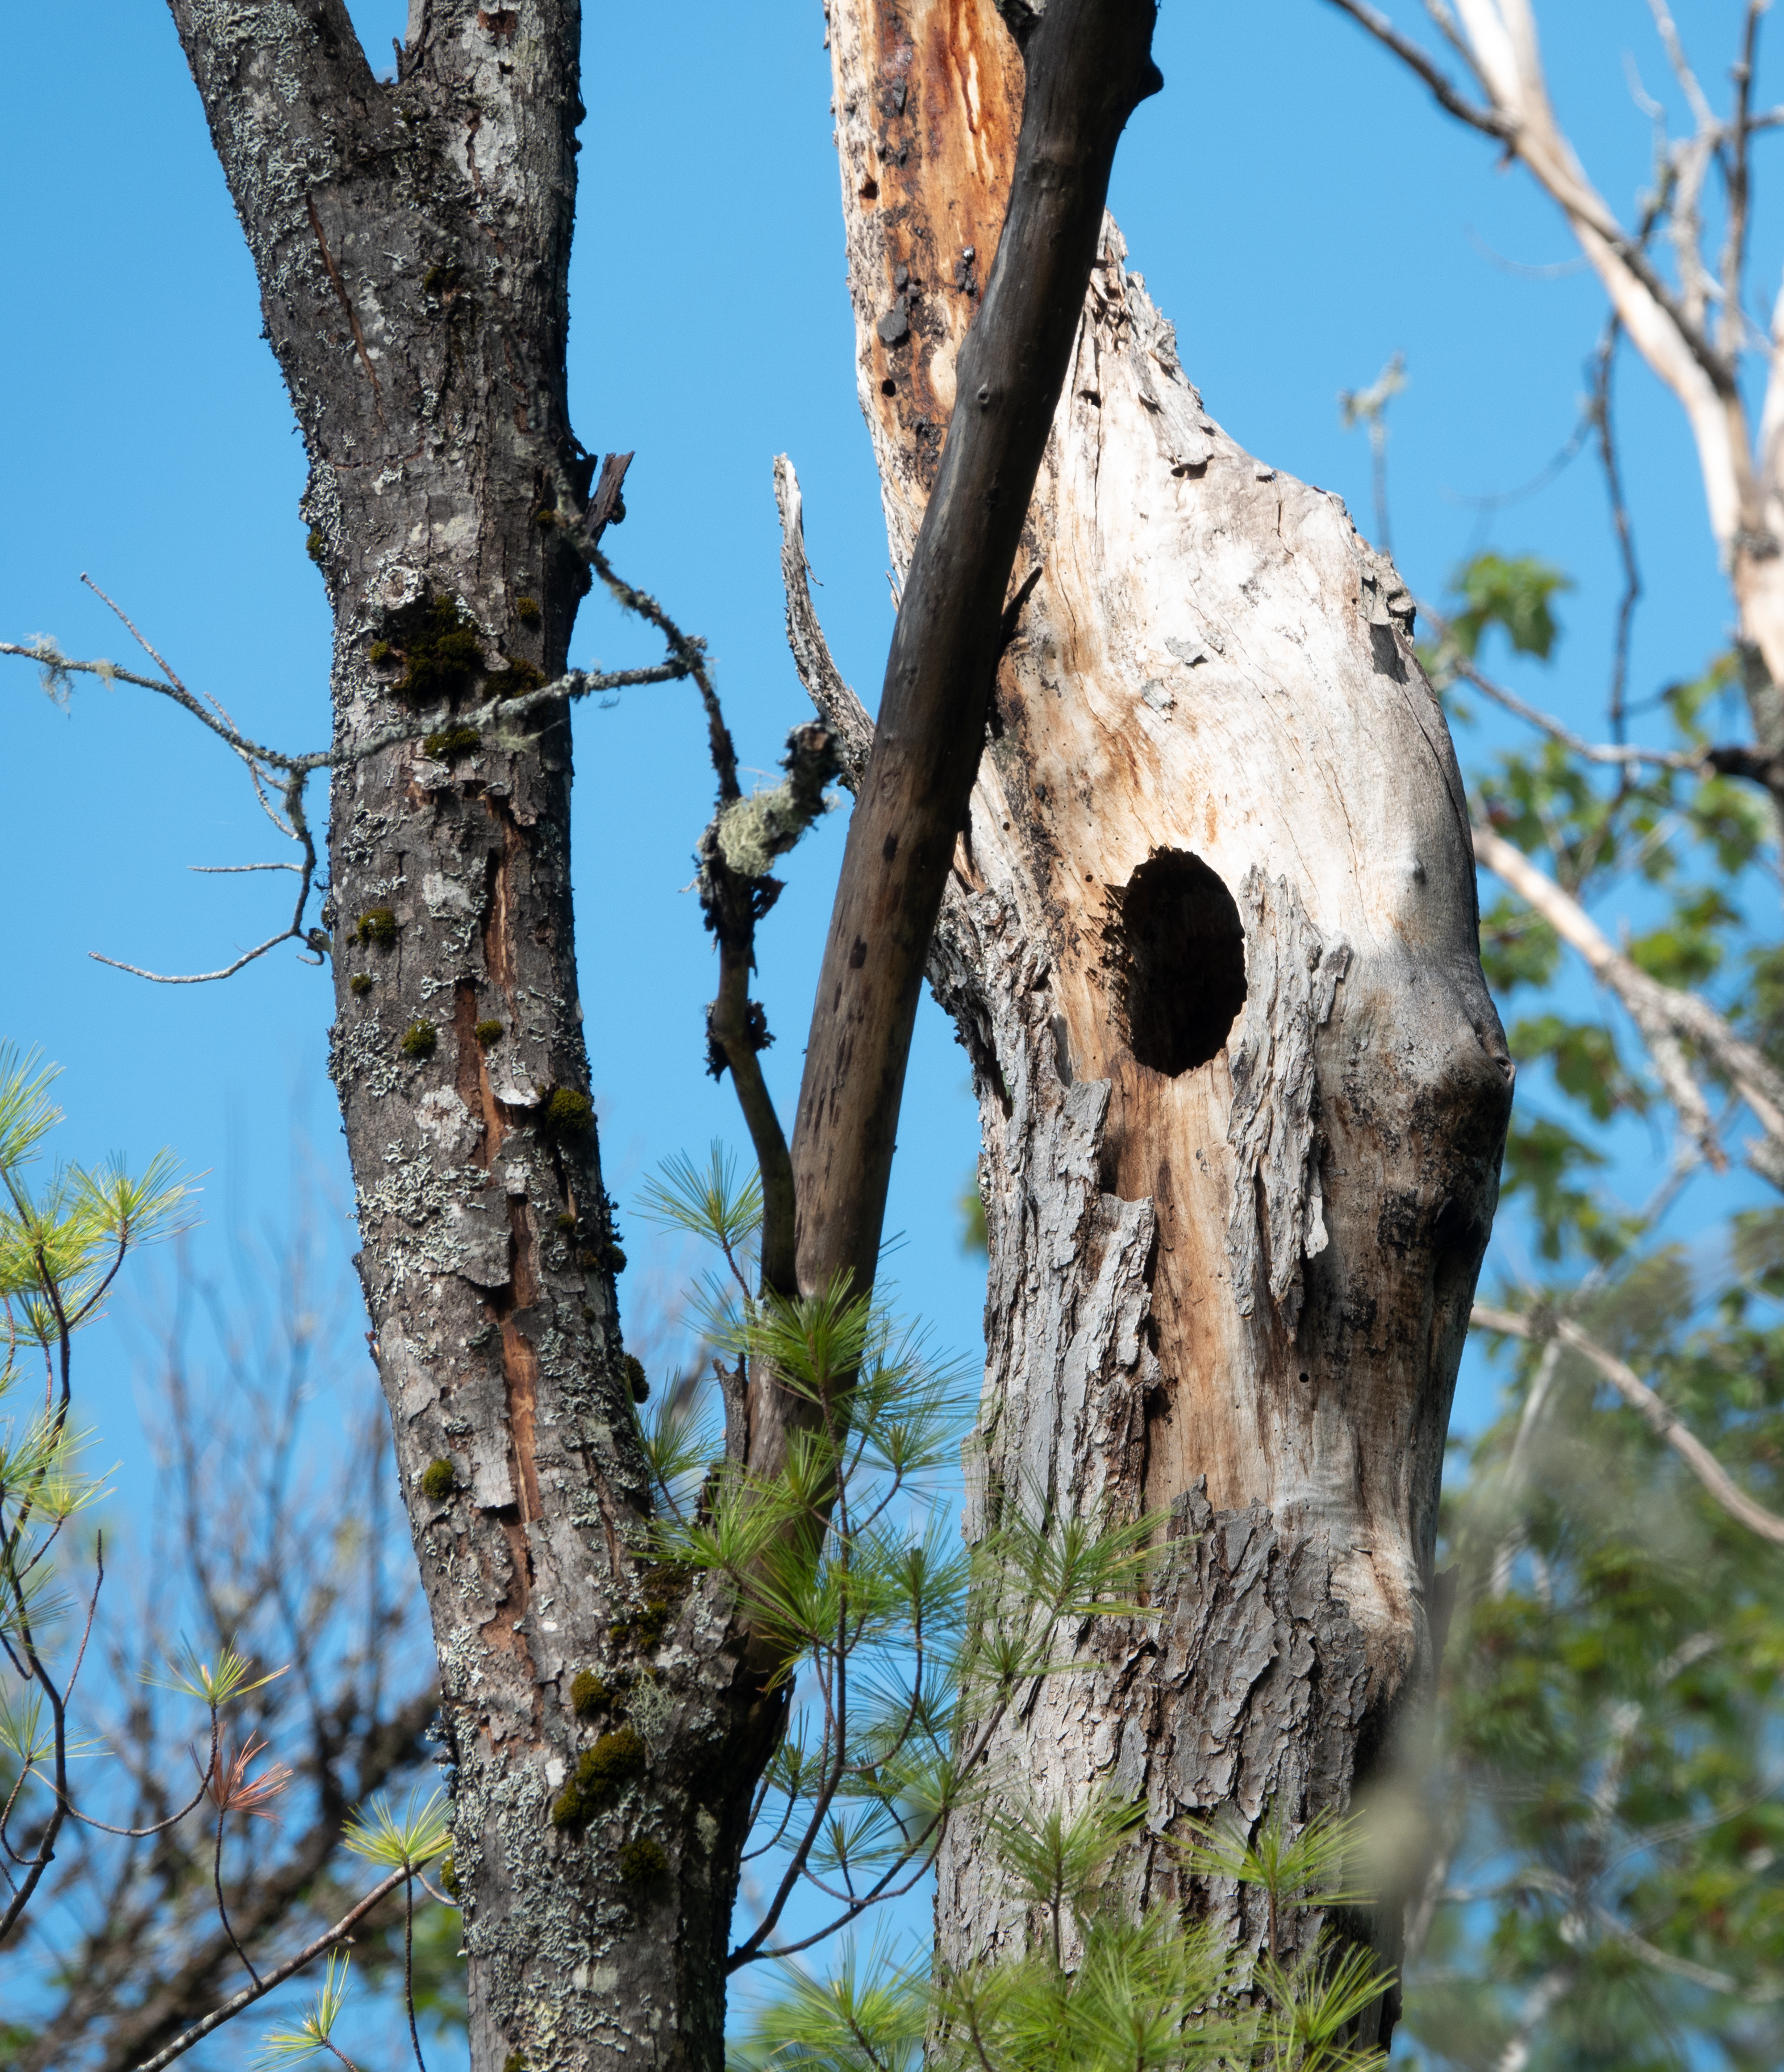 Possible wood duck nest hole